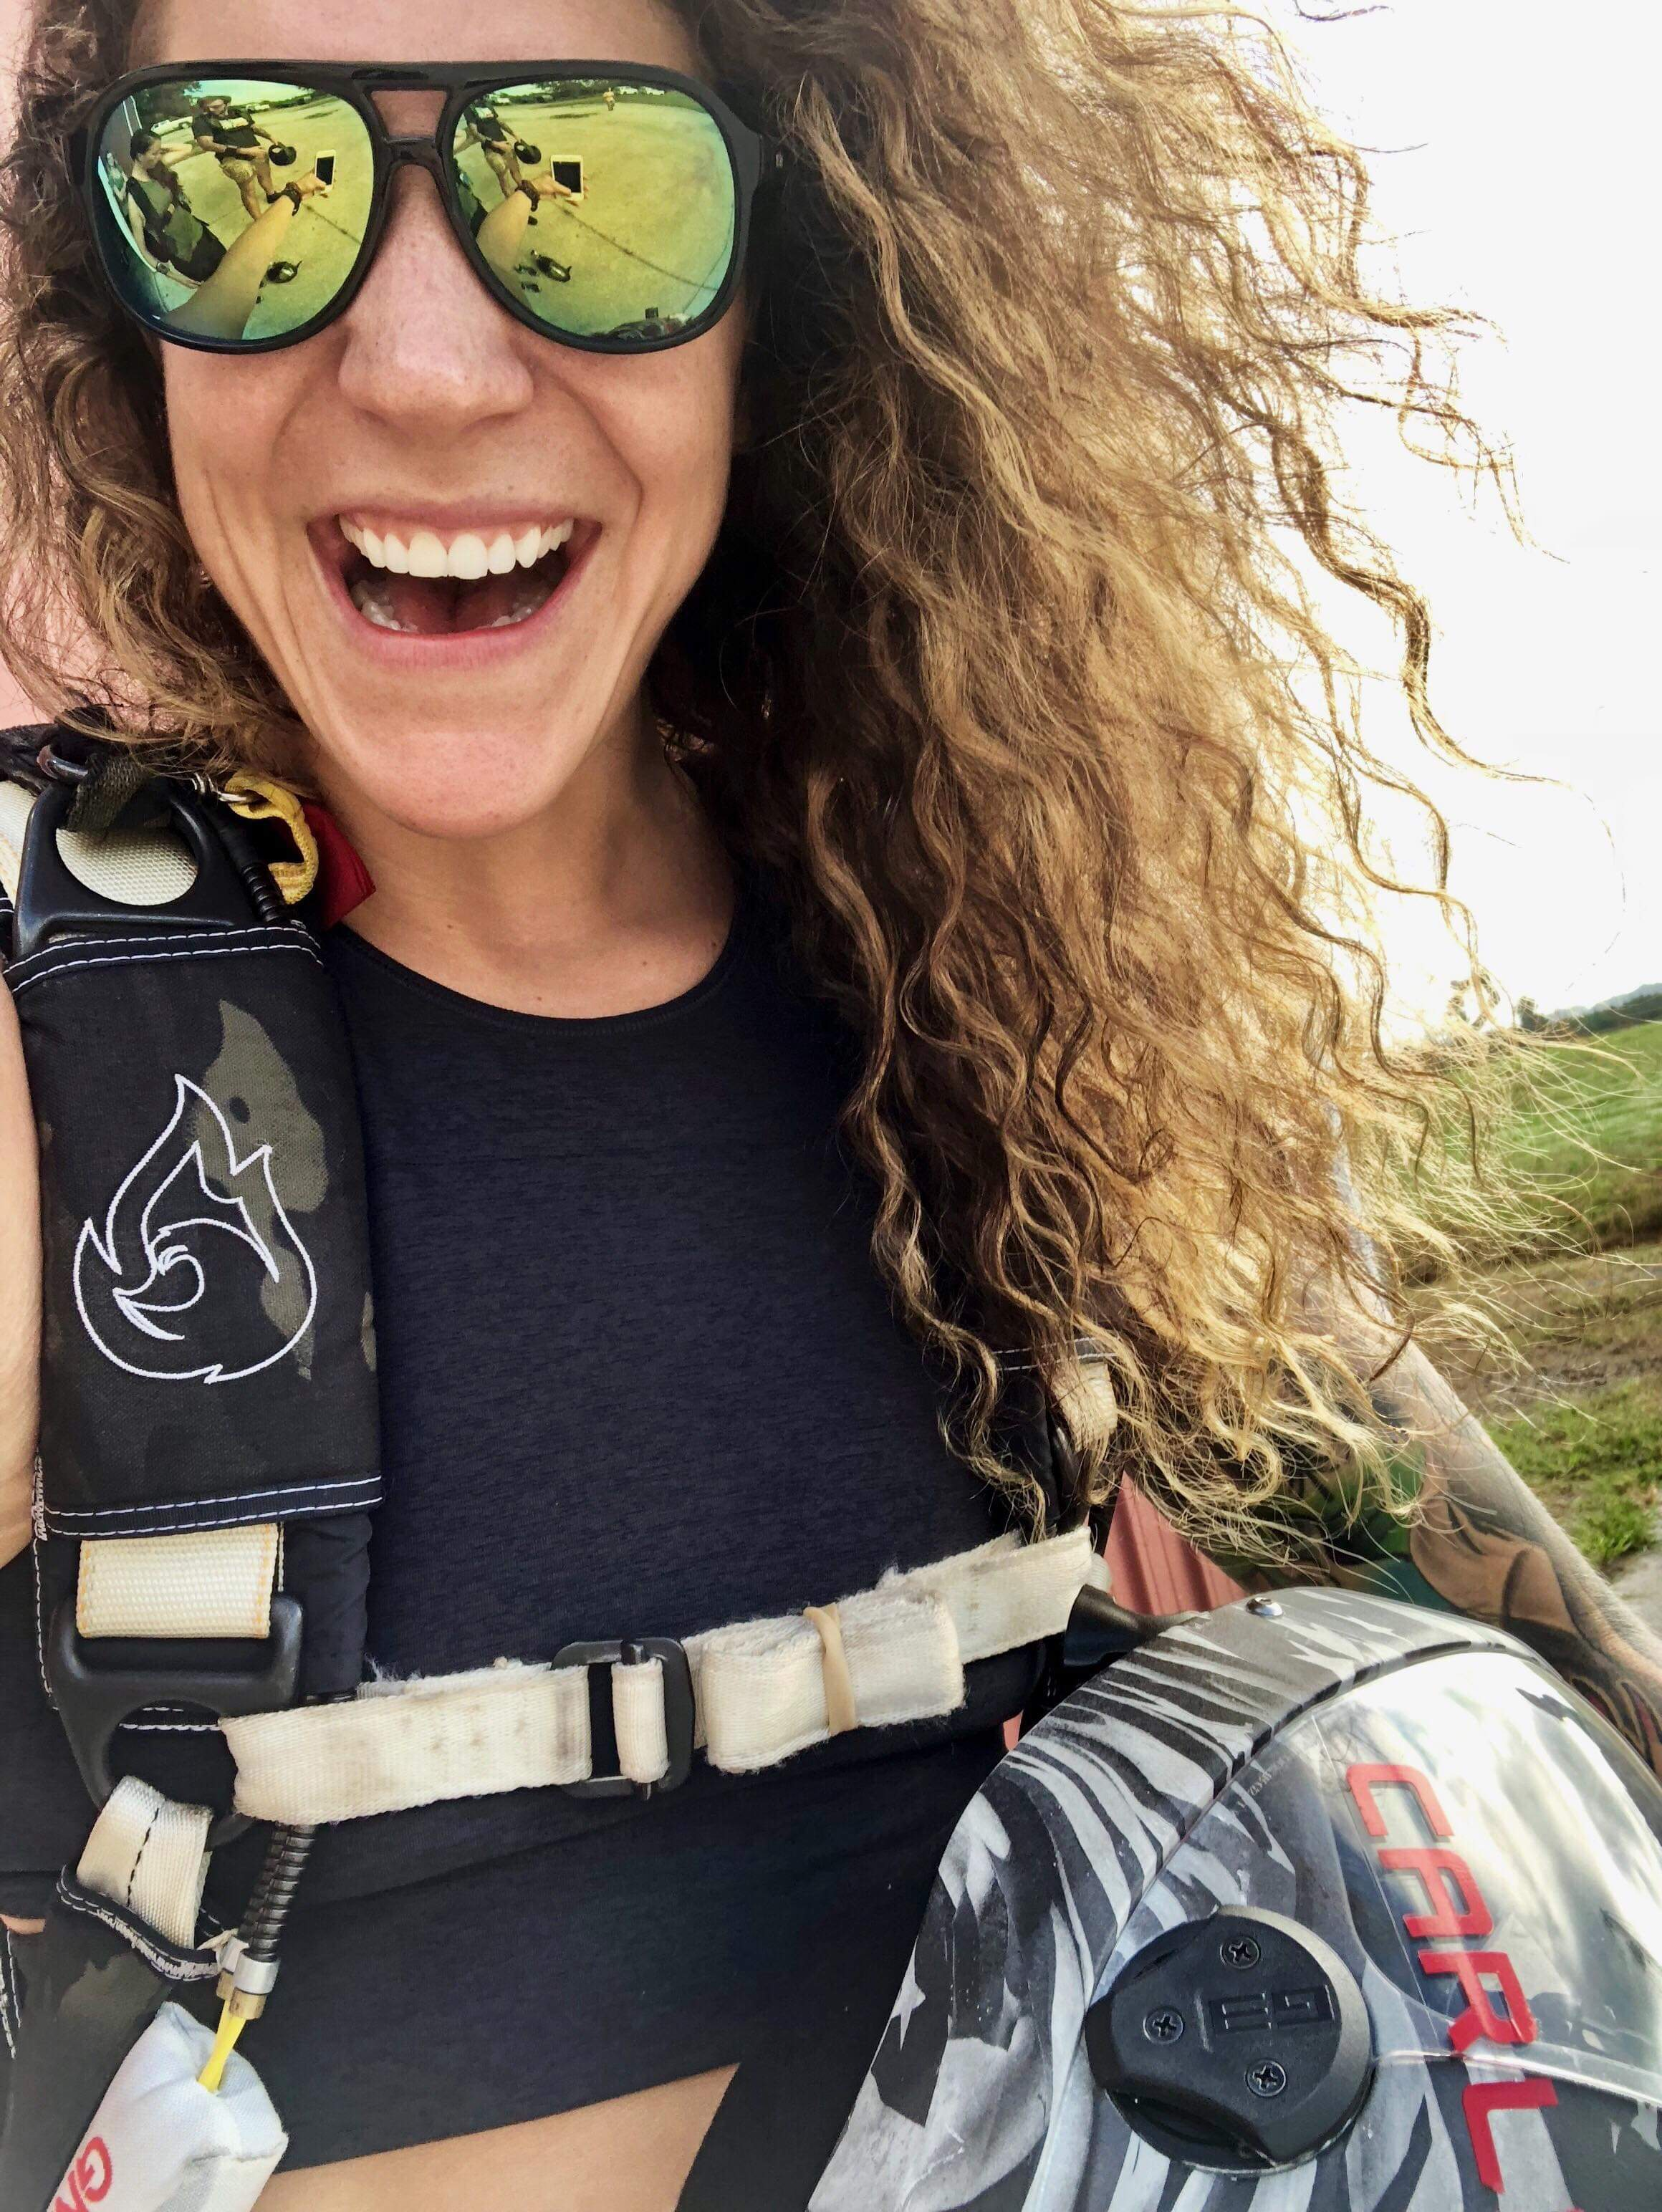 Carlye Barto   Gnarly Carlye is the good vibes queen. Based out of Virginia Beach, she has been a freefly coach and tunnel instructor for several years now. She holds multiple state and world records in freeflying, is a parachute rigger and a tandem instructor. She has competed in 4 way dynamic in the wind tunnel and enjoys flying freestyle. Carlye loves jumping with students of all skill levels and helping them progress in the sport.